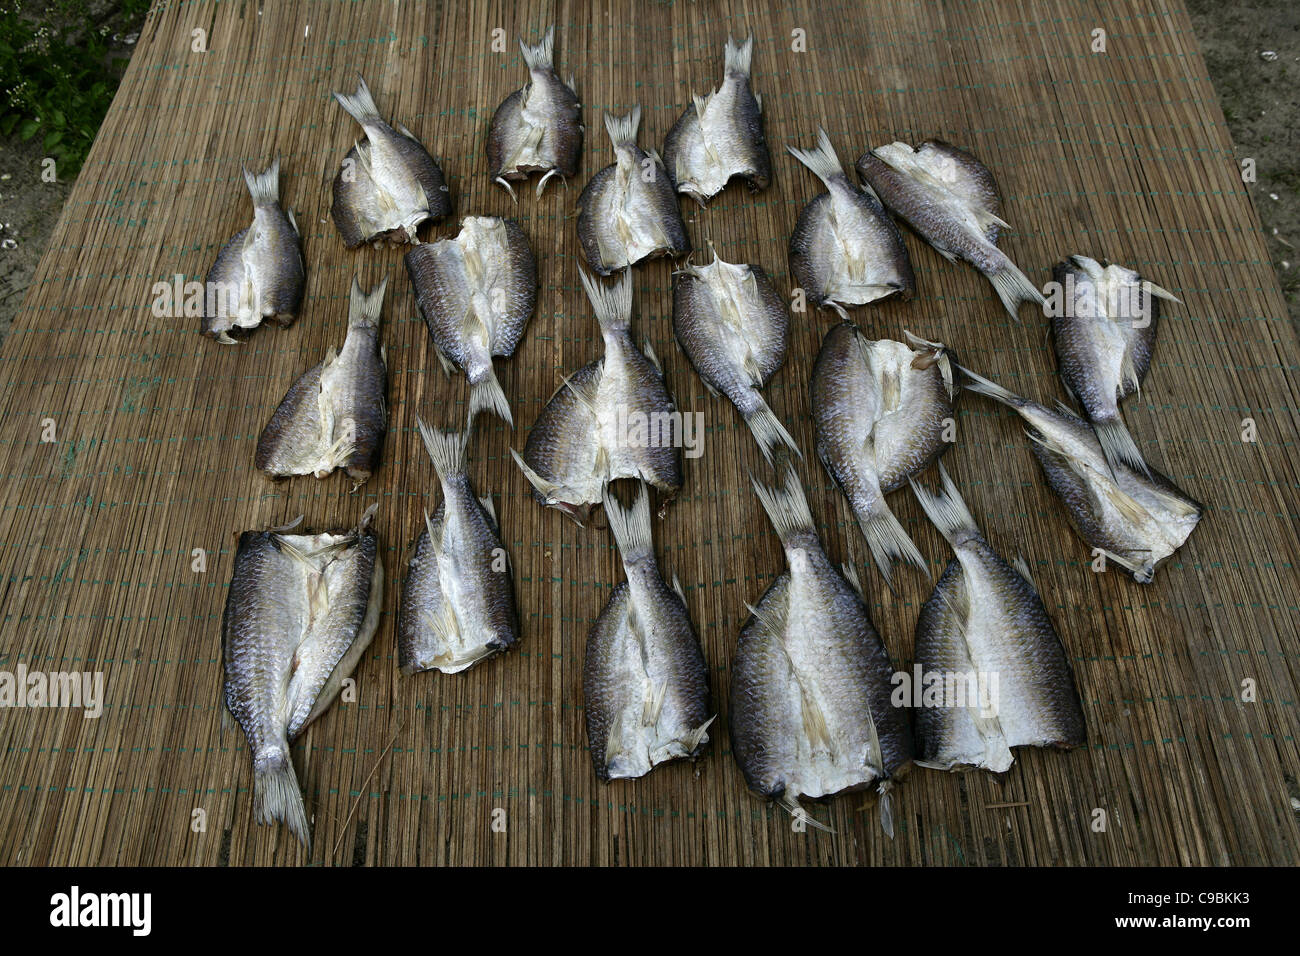 Africa, Guinea-Bissau, Fresh fishes kept on mat - Stock Image